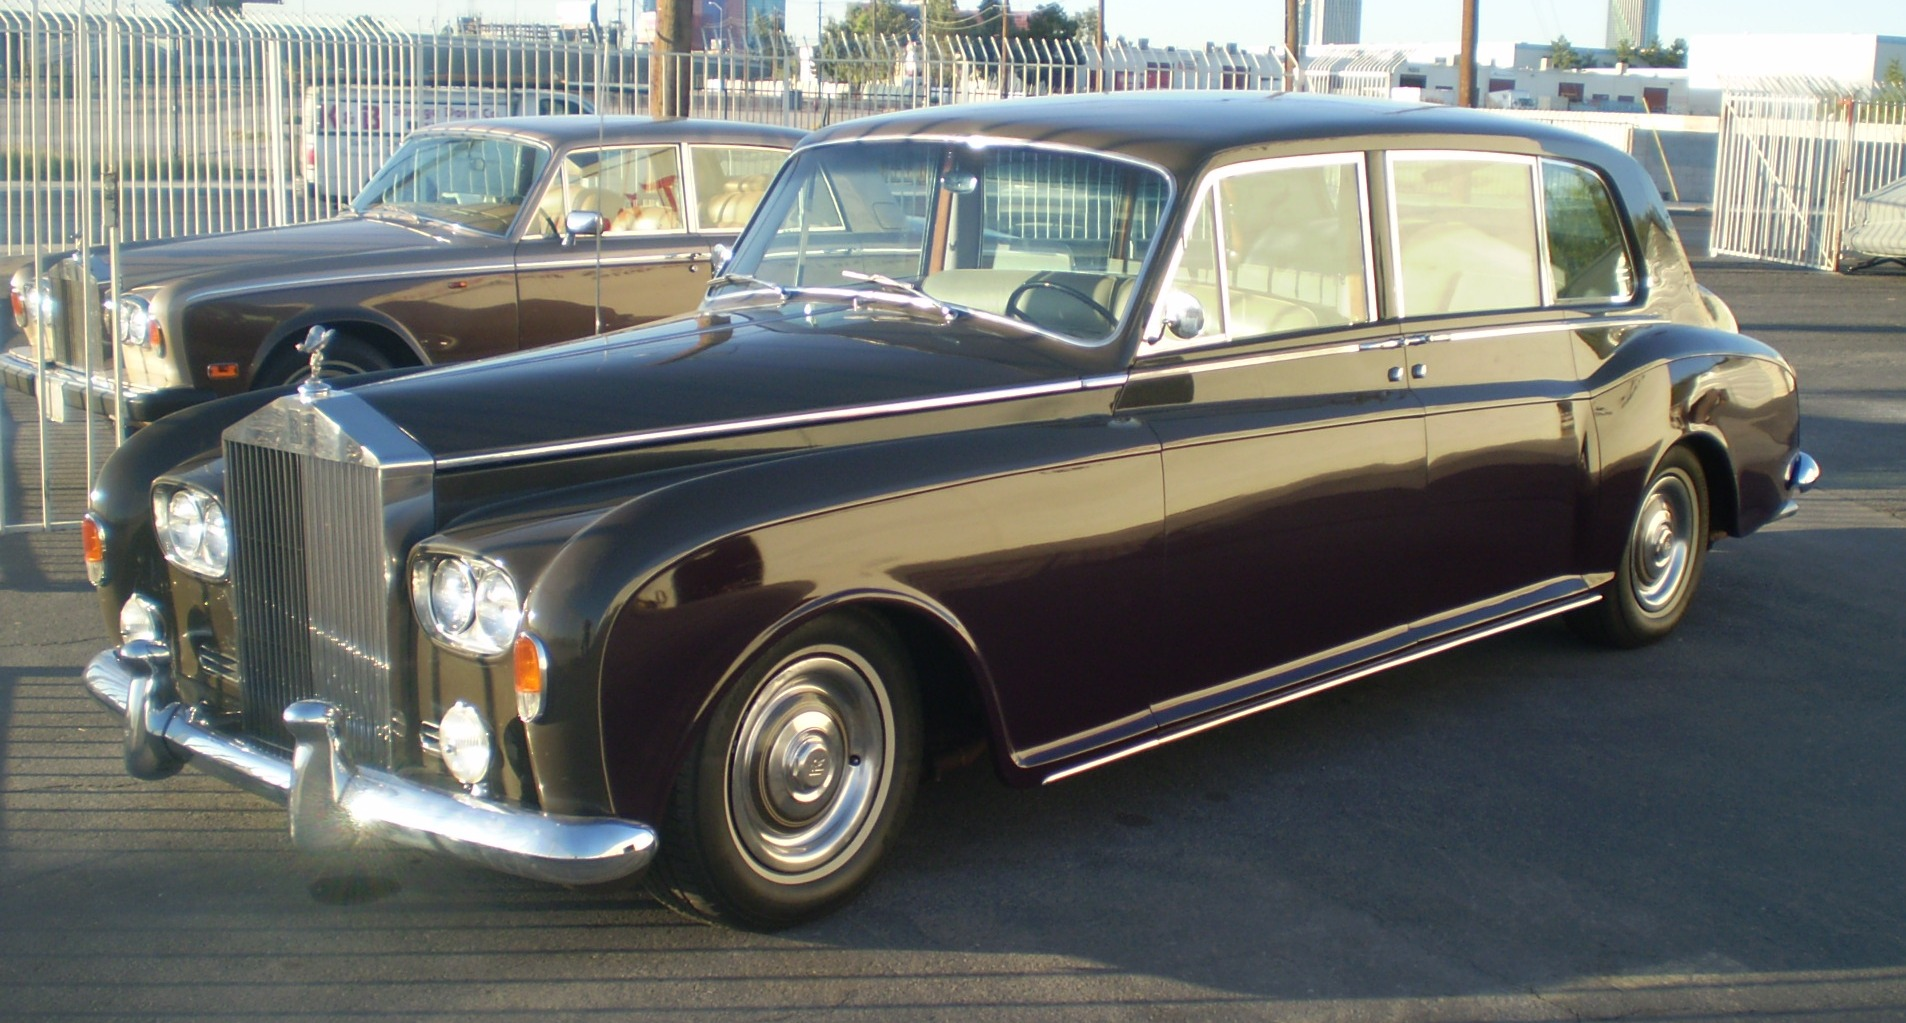 1964-Rolls-Royce-Phantom-V Front-Side View